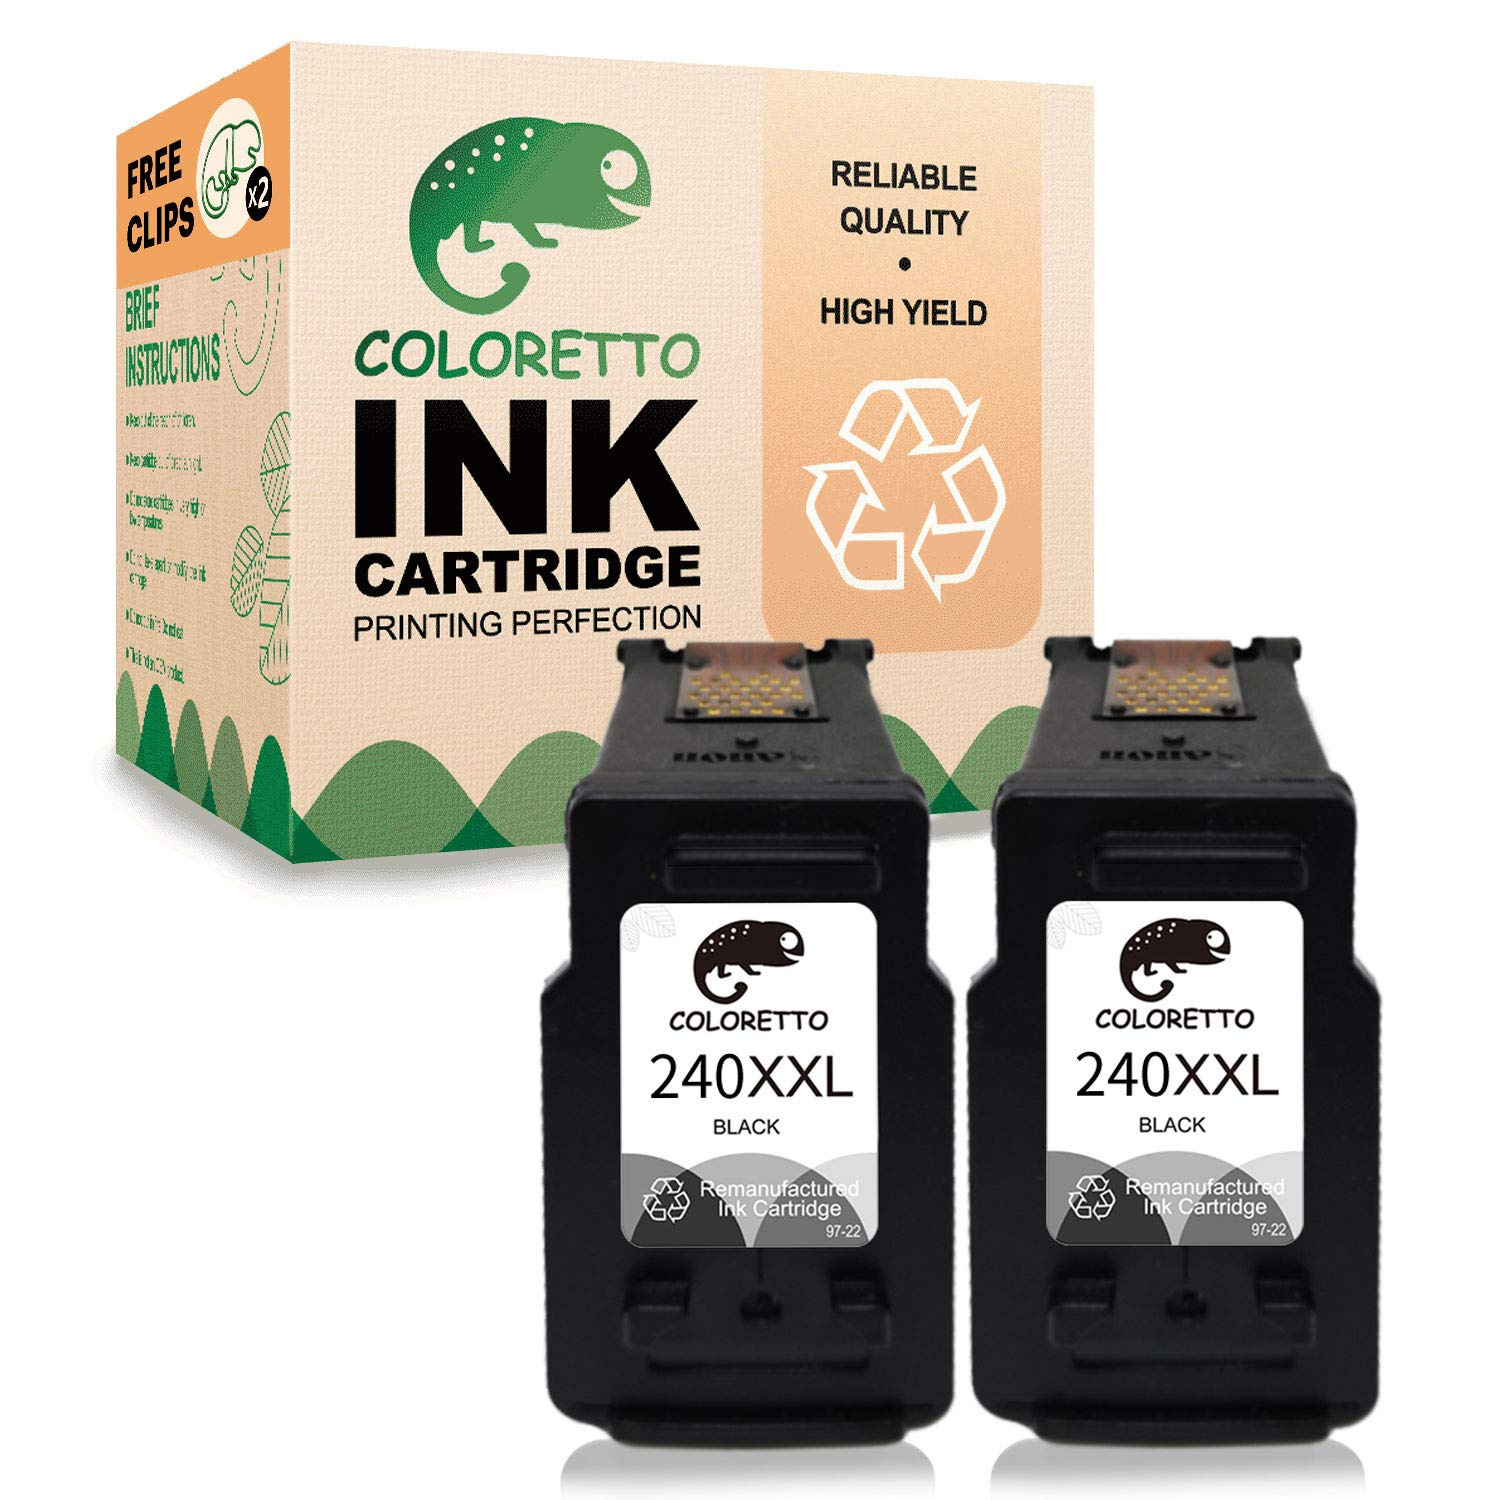 Coloretto Re-Manufactured Printer Ink Cartridge Replacement for Canon PG-240XXL,240XL 240 XL Used in PIXMA MG3620 MG3520 MG3220 MG2220 MG2120 MX532 MX472 MX432 MX452 MX522 TS5120 MX392 (2 Black